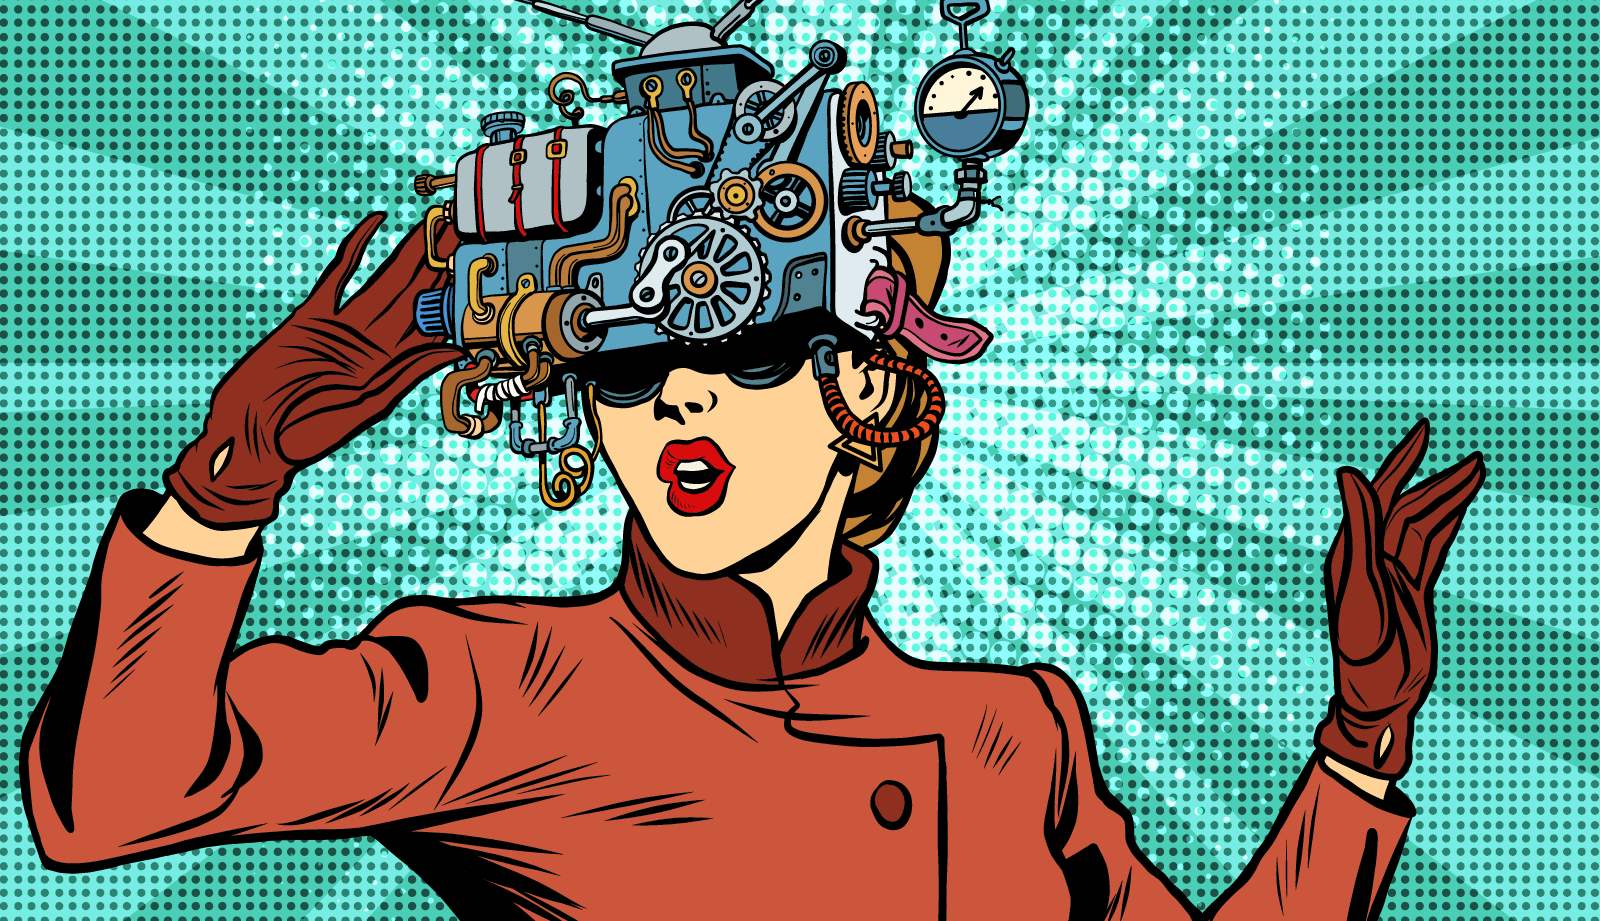 woman wearing steampunk device over eyes to view device